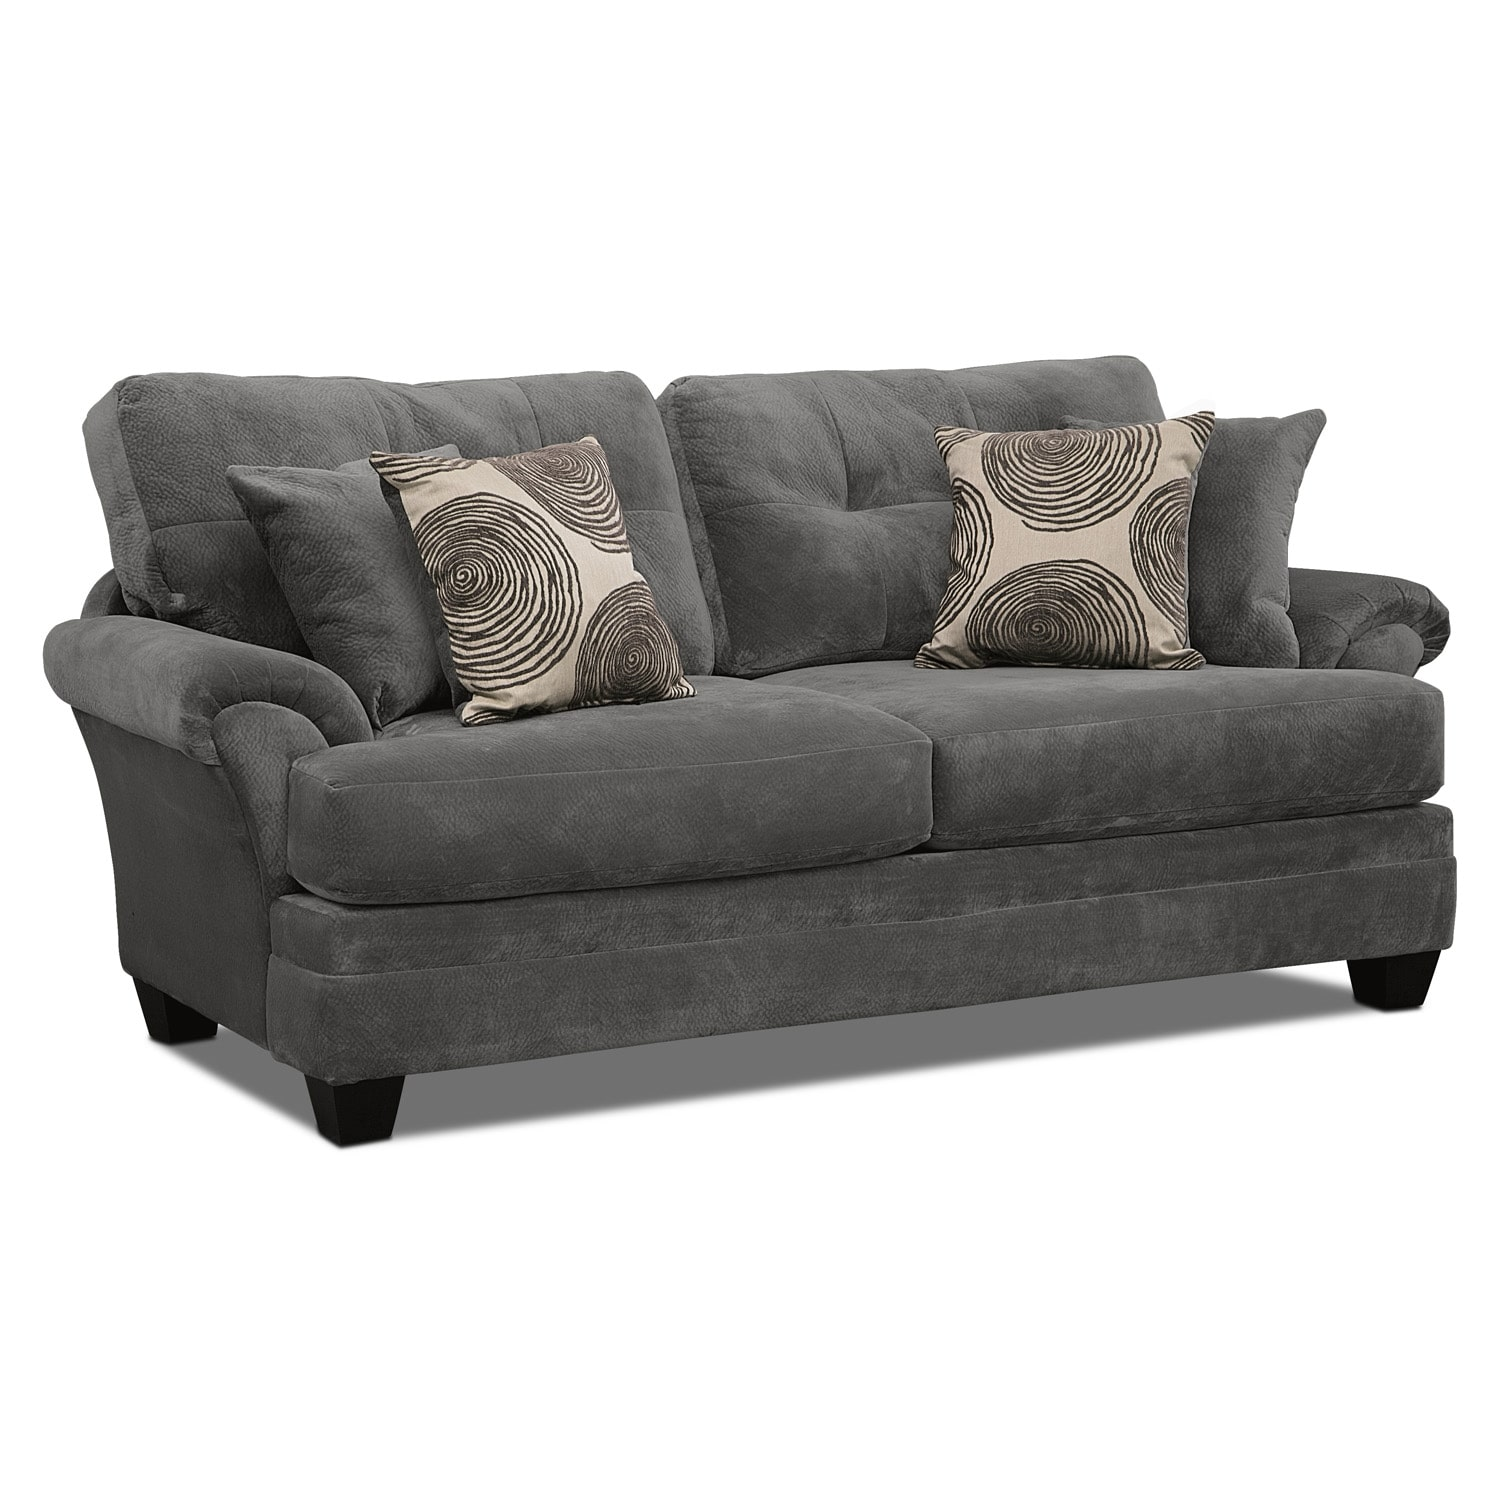 Click to change image. - Cordelle Sofa, Loveseat And Cocktail Ottoman Set - Gray Value